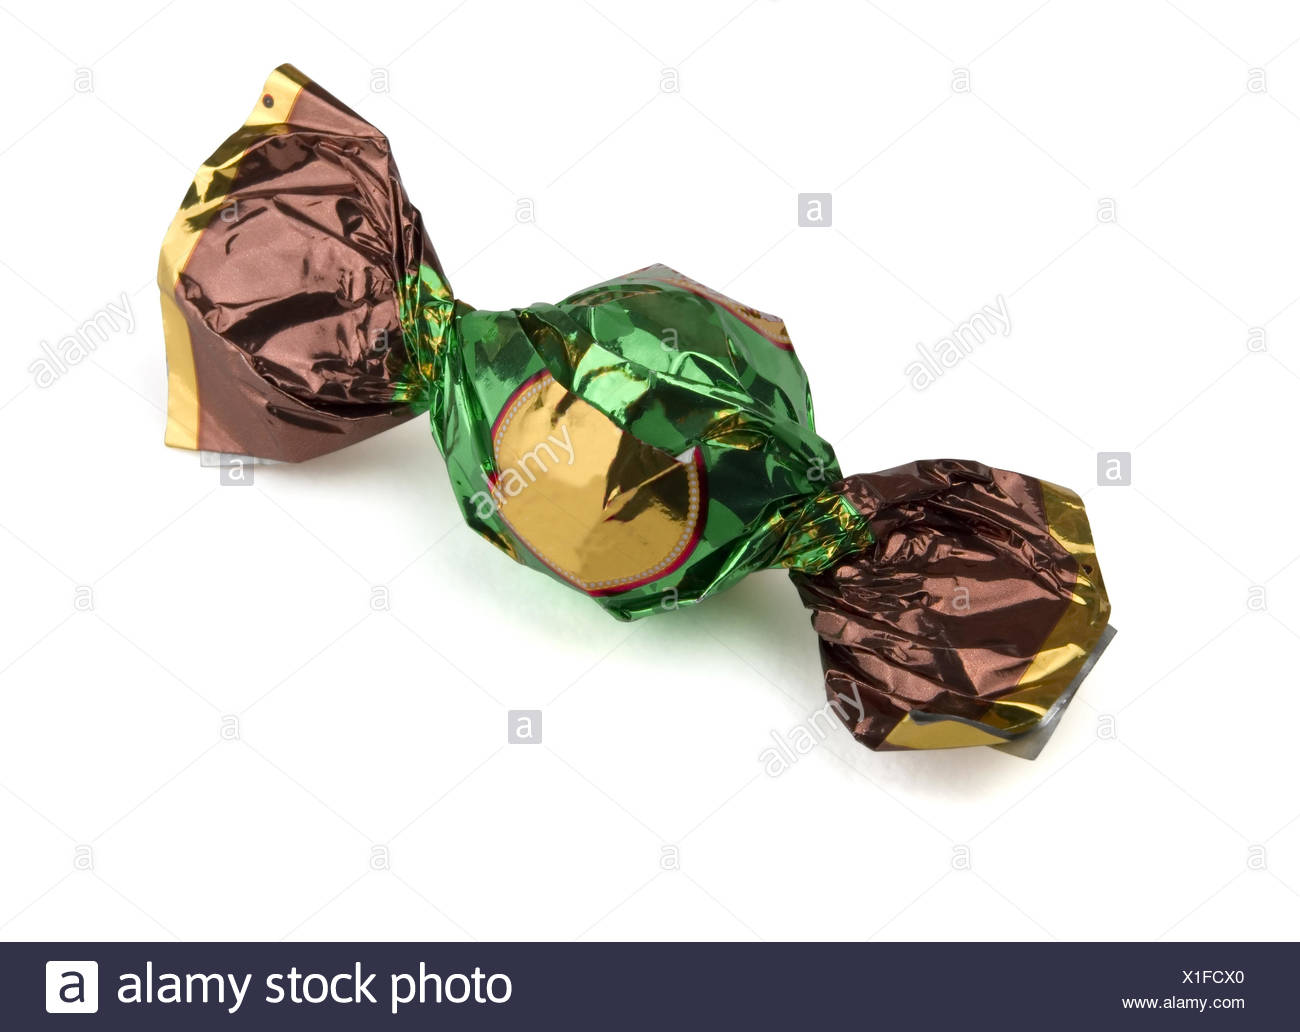 Foil wrapped candy - Stock Image